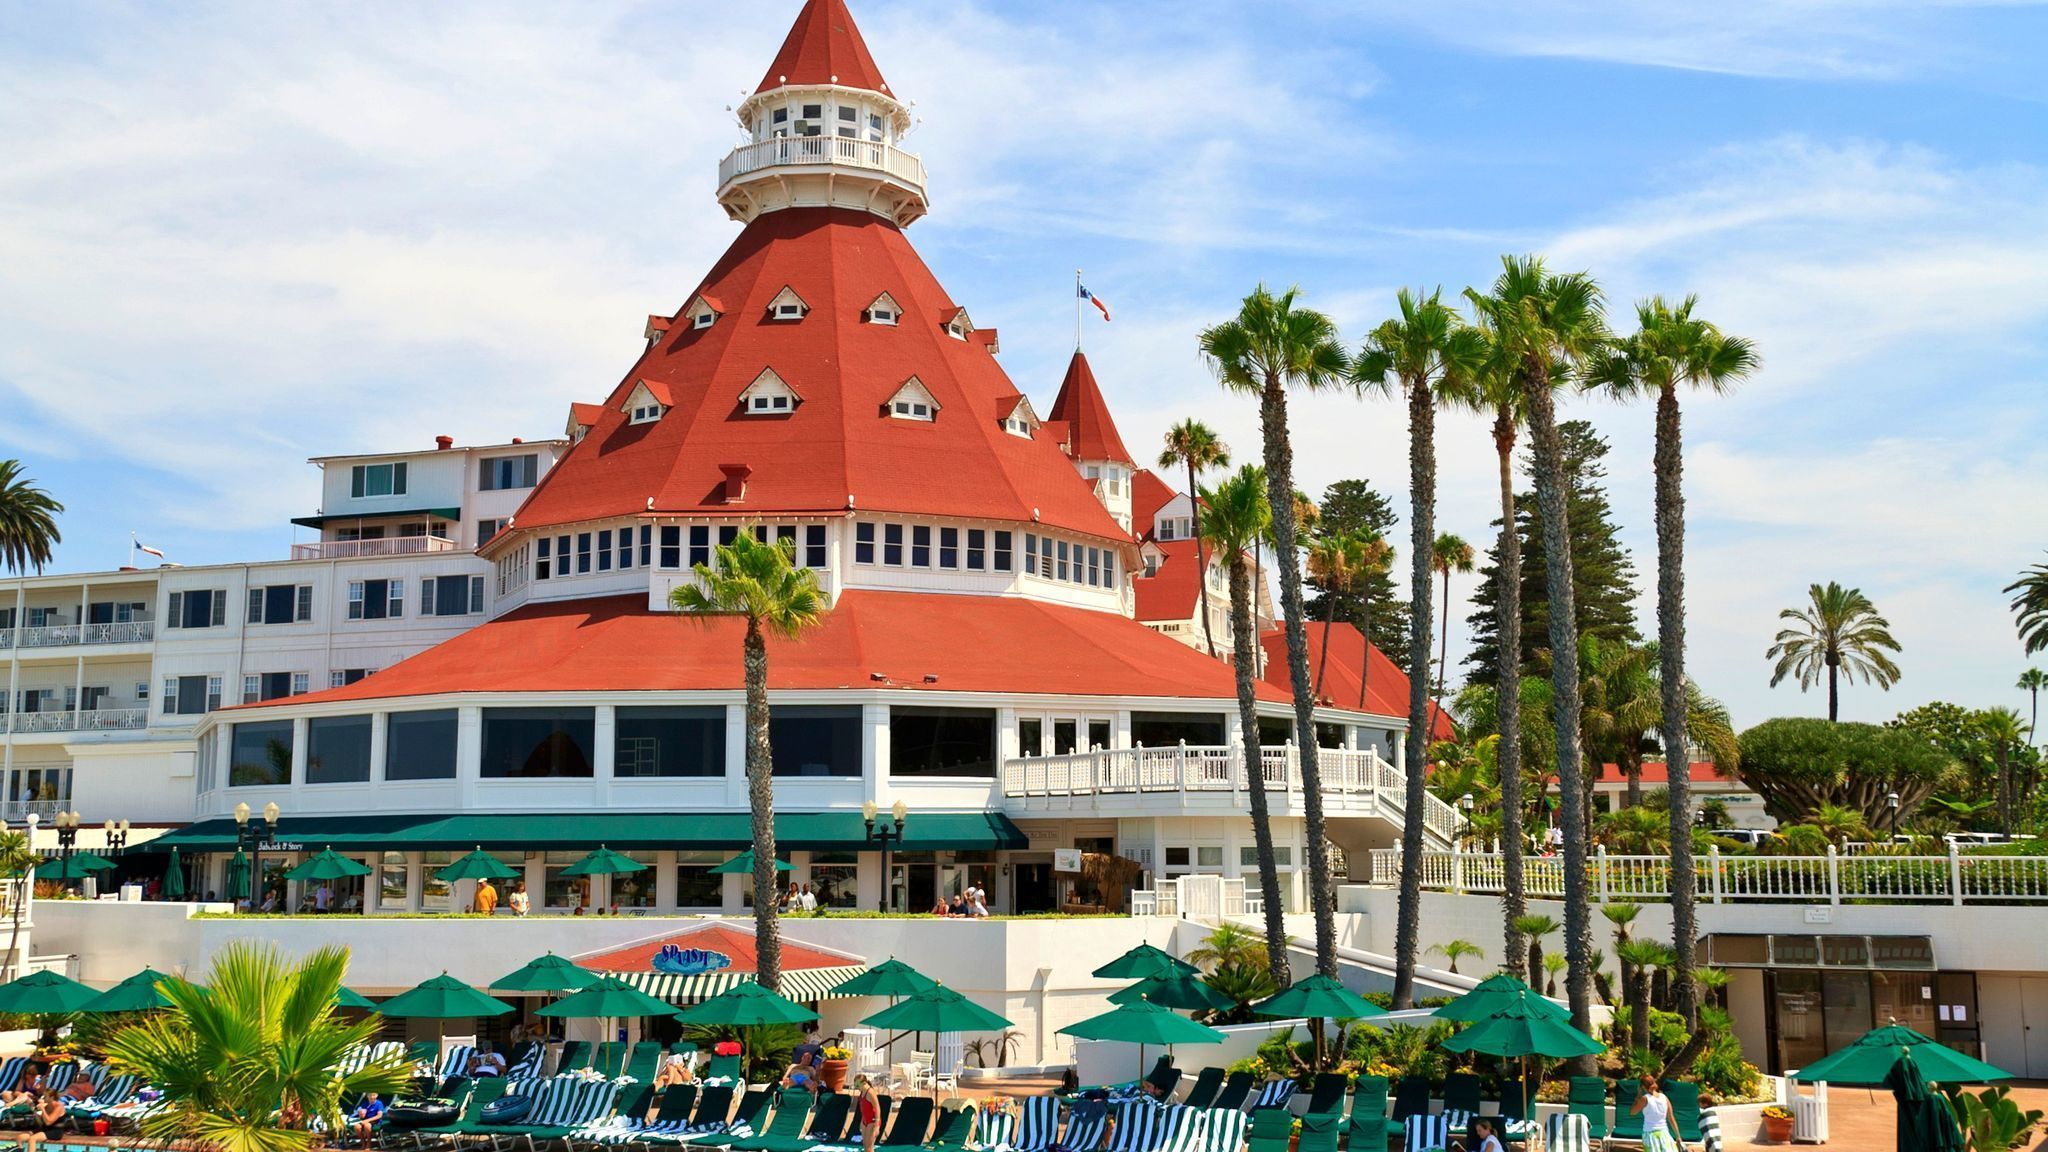 Hotel Del Coronado Is Going To Become A Hilton The San Go Union Tribune